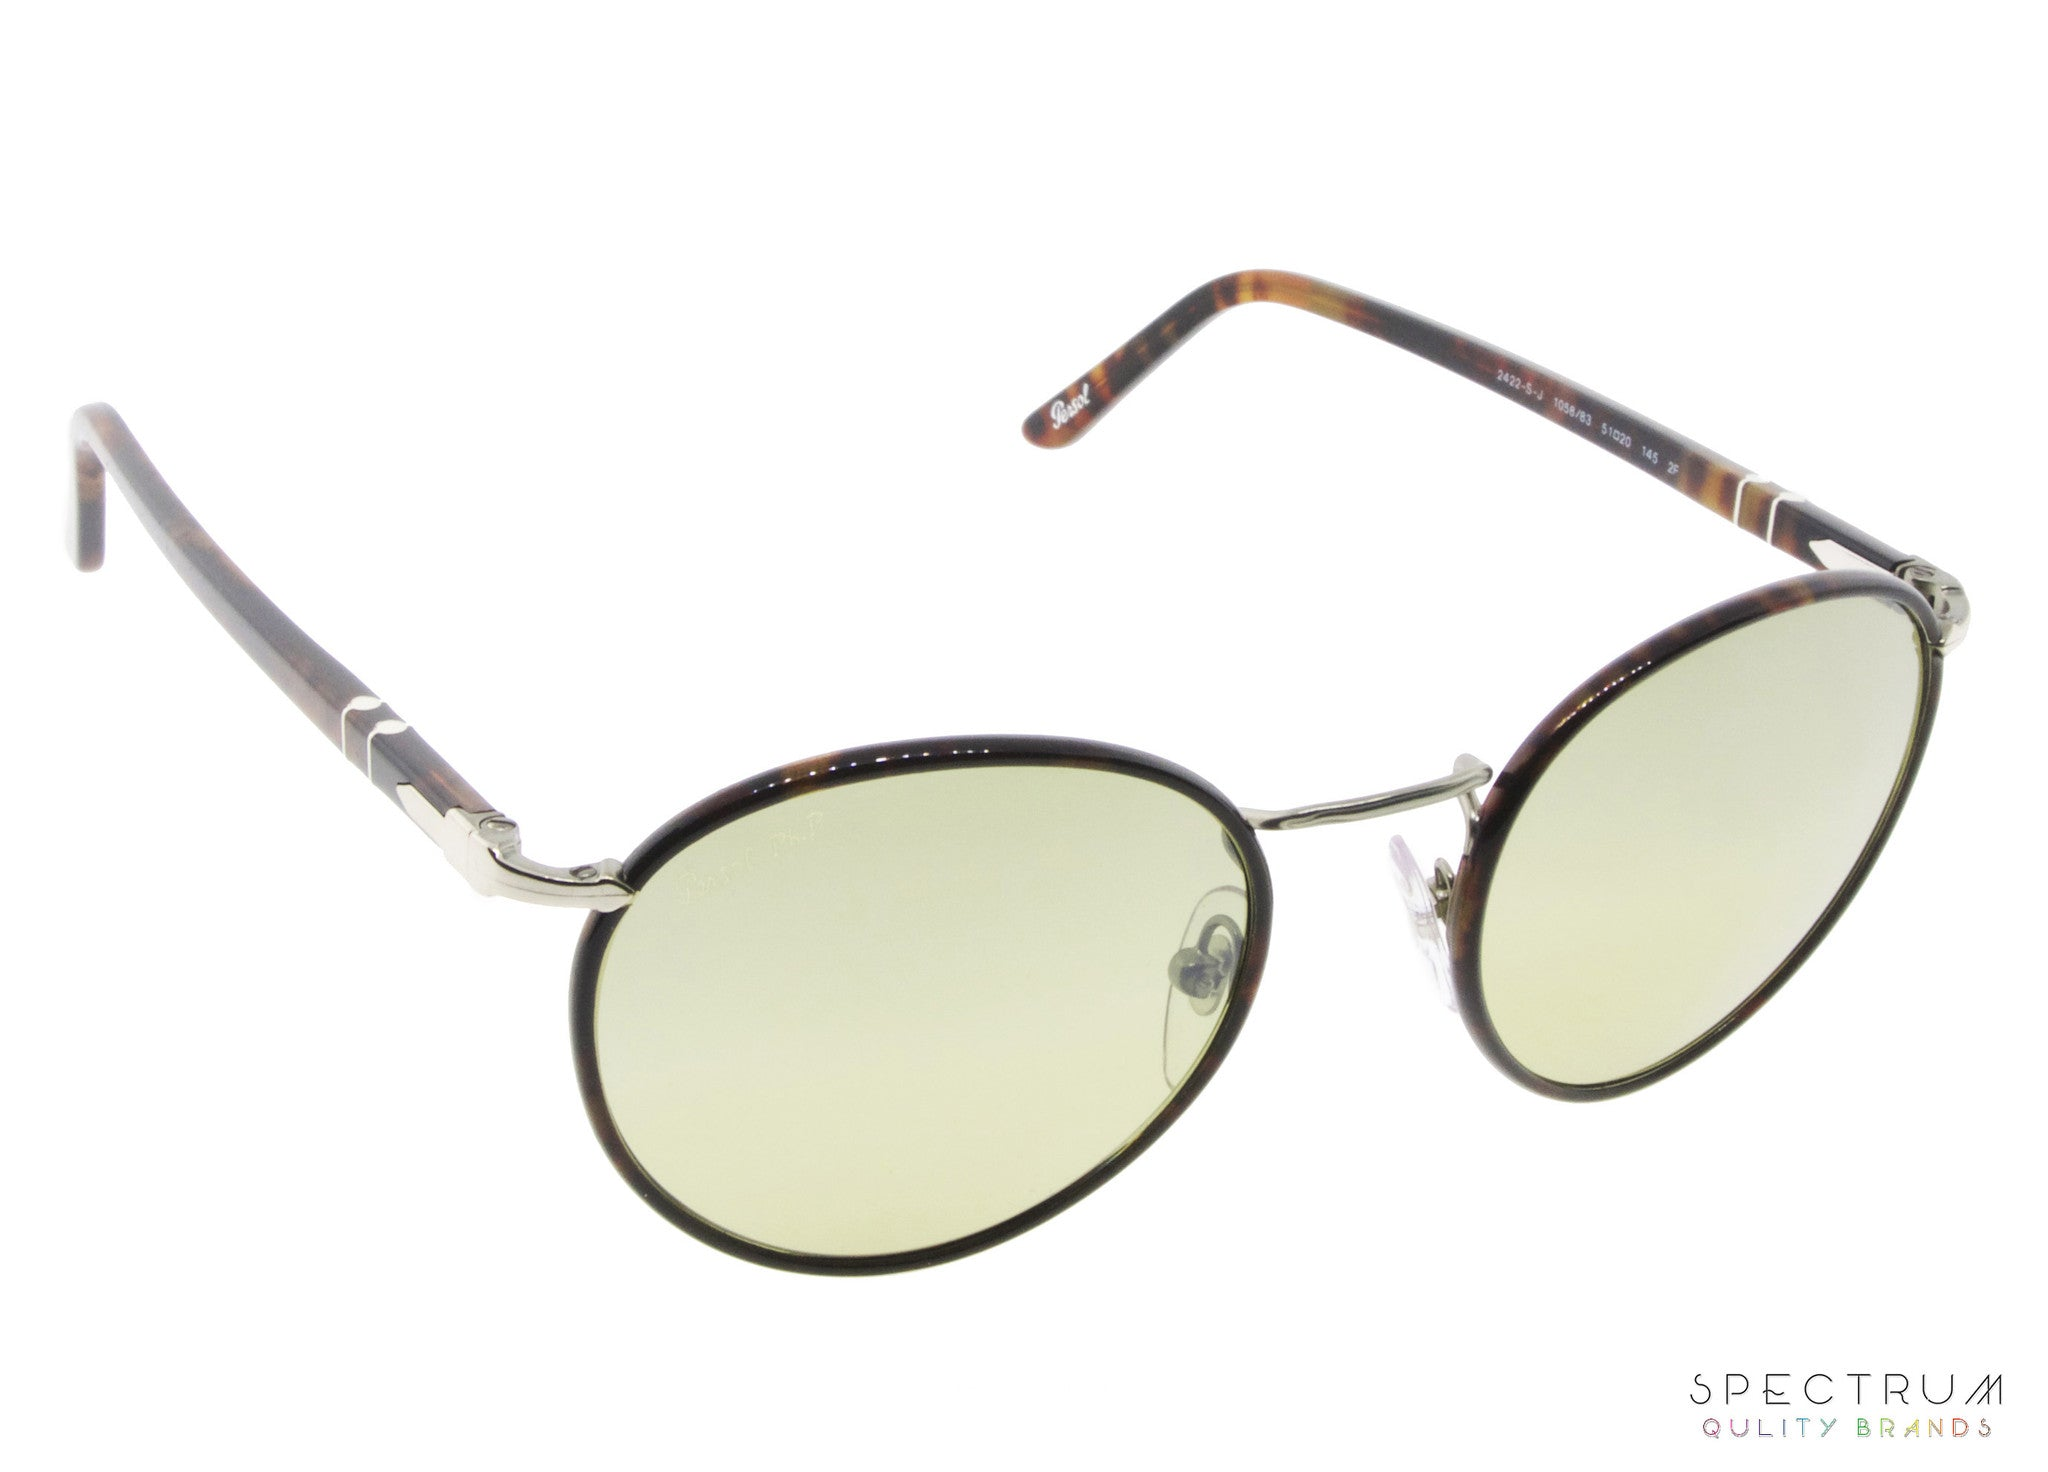 5ca9434e411 Persol Sunglasses 2422S 1058 83 Caffe with Photo - Polarized Green Faded Lenses  Size 49